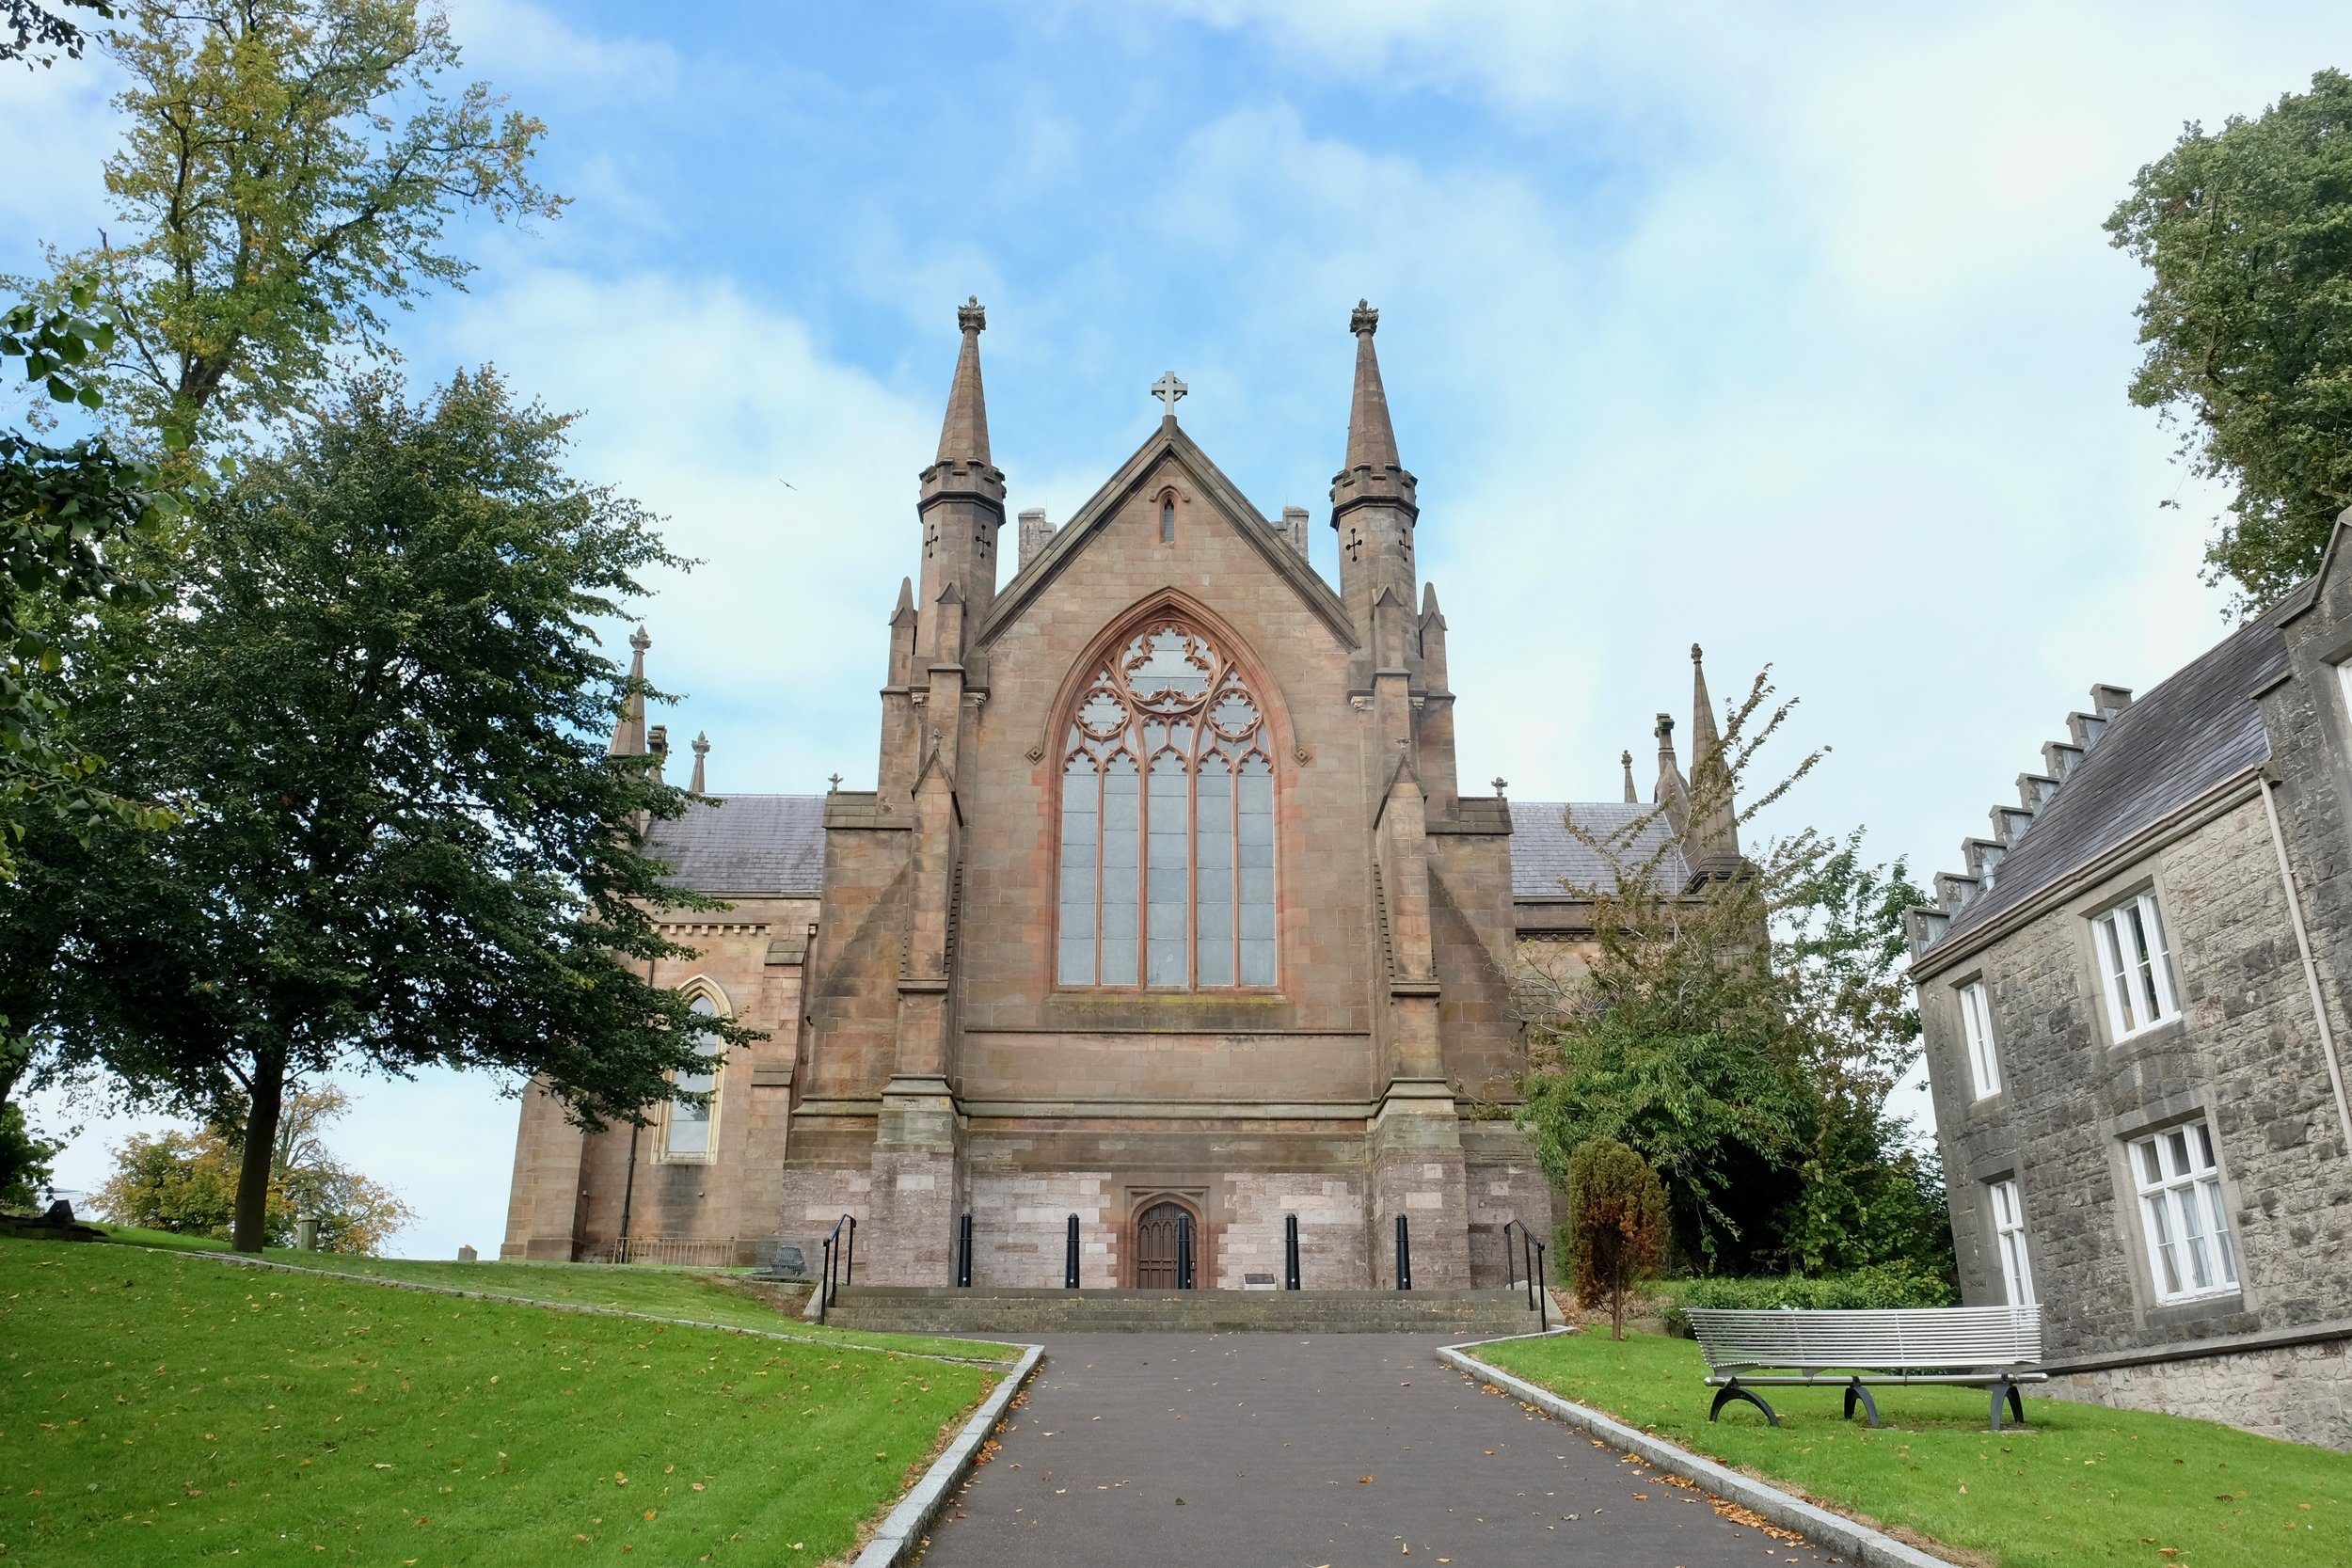 Here is the other Saint Patrick's Cathedral à la Church of Ireland, dating back to 445 AD.